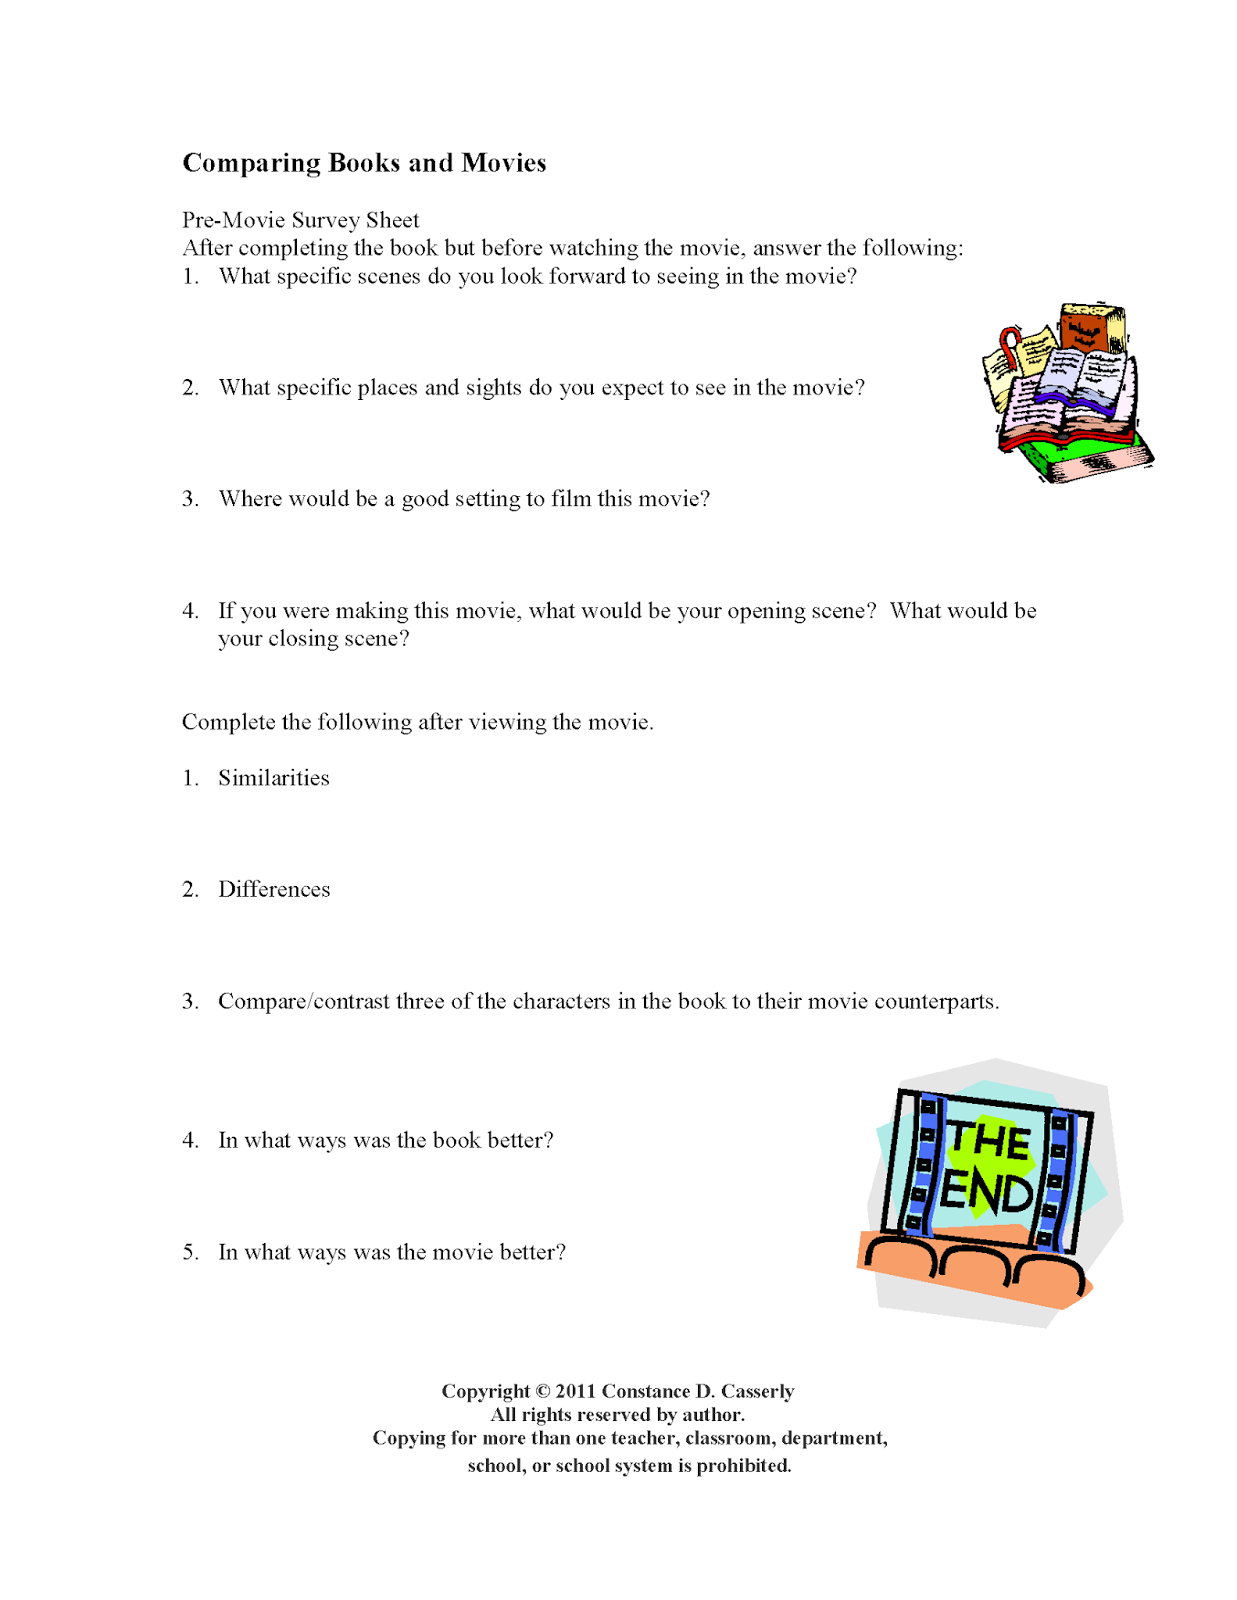 Activity: Comparing Books and Movies Worksheet